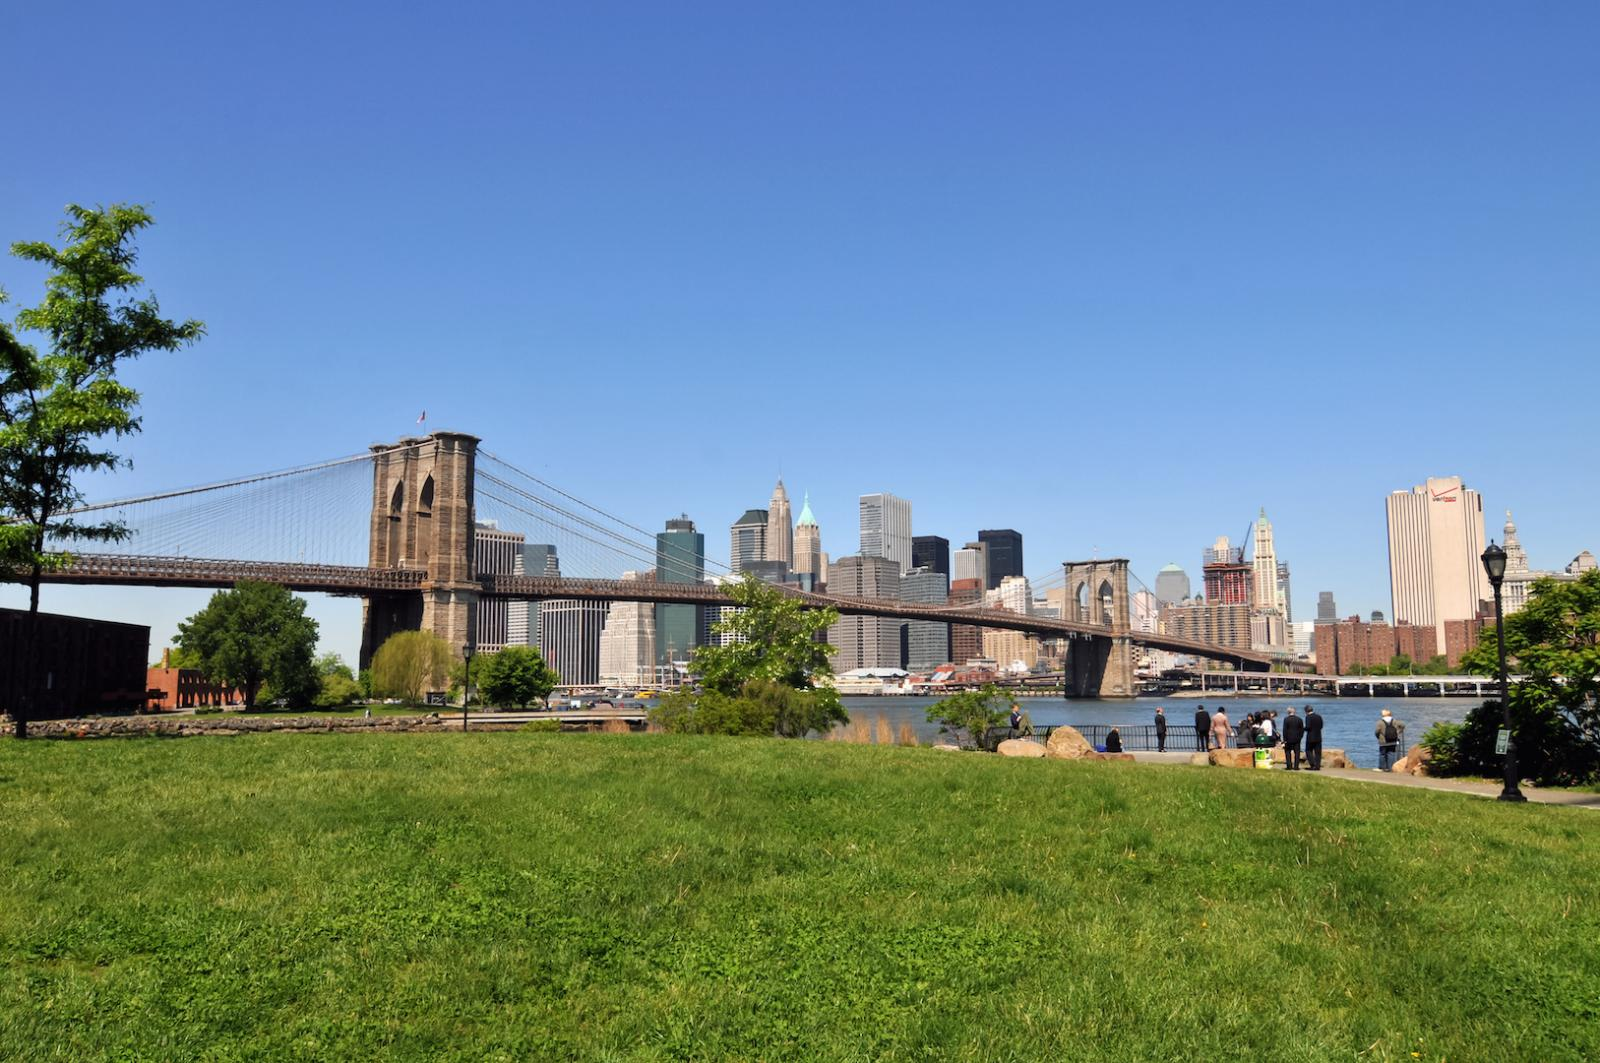 Manhattan Karte Brooklyn Bridge Park Mit Toller Aussicht Auf Die Skyline